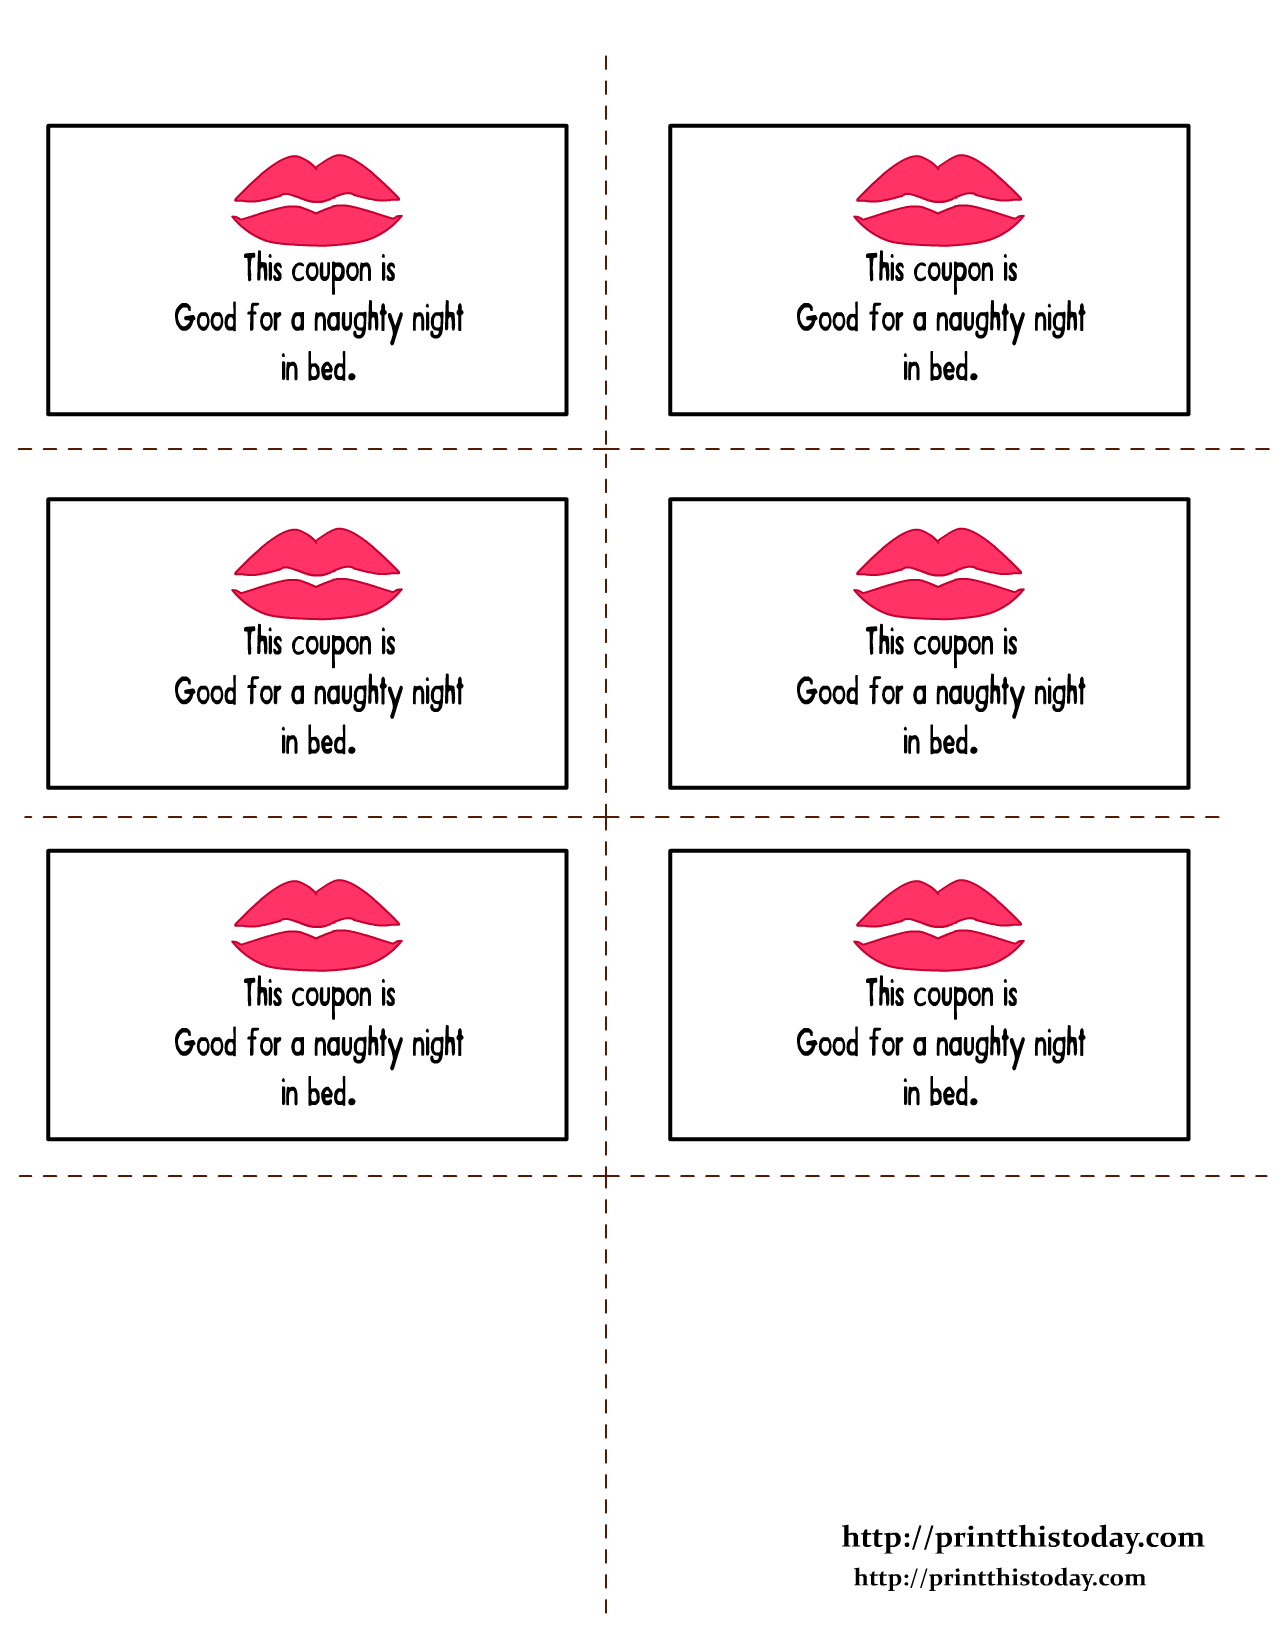 Free printable romantic coupons